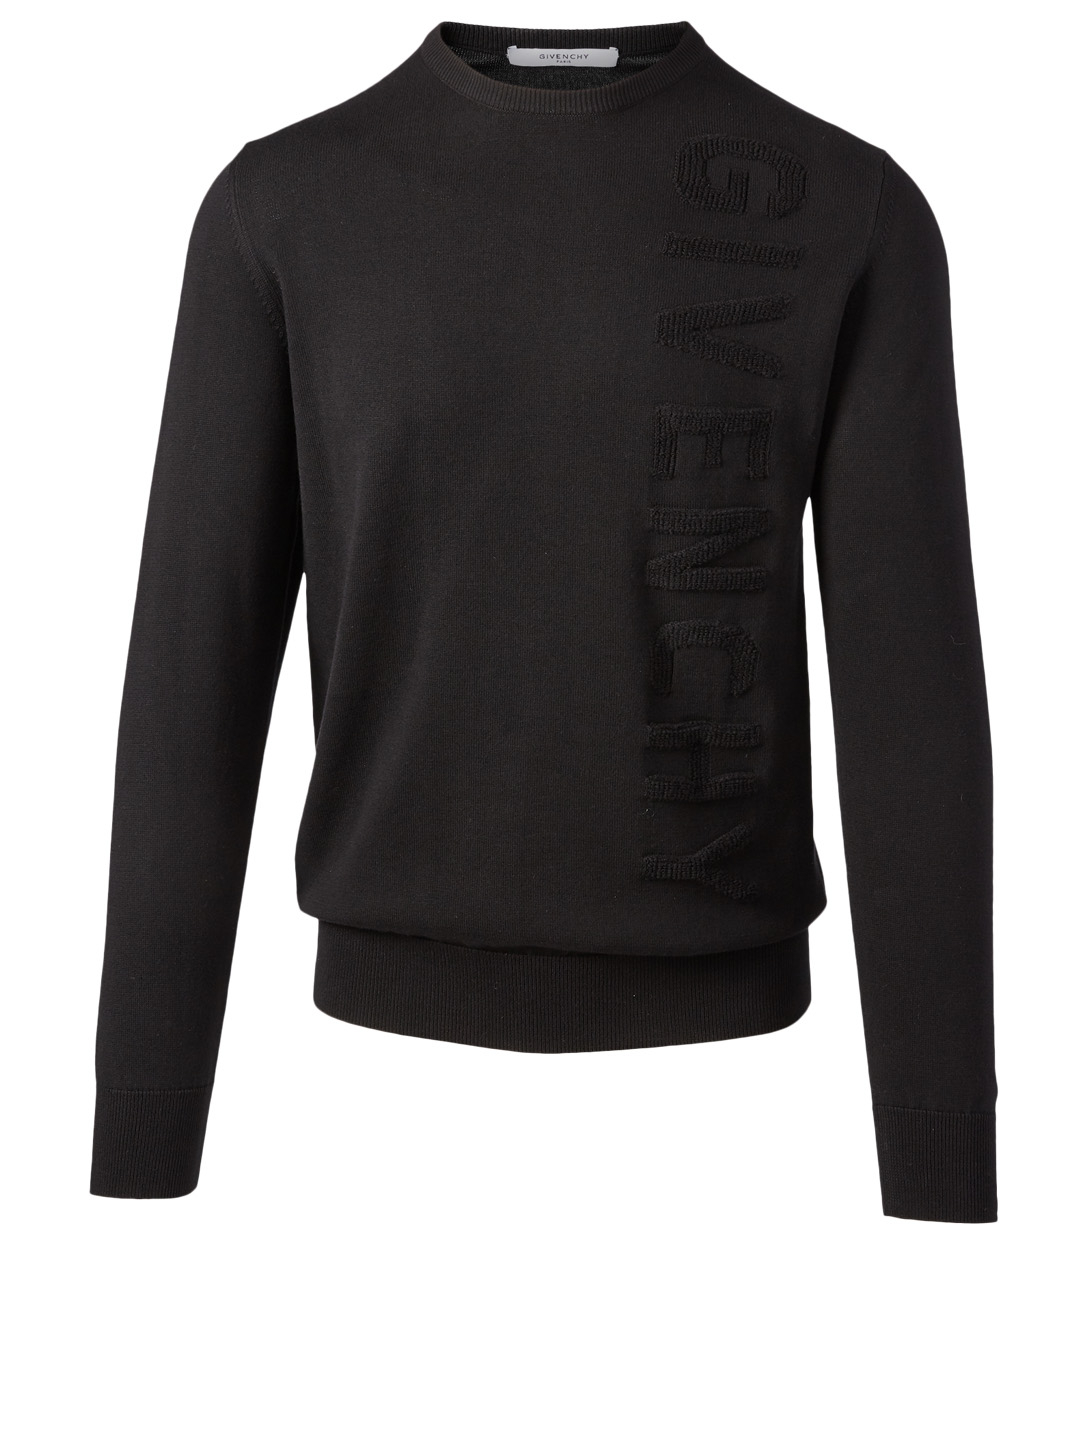 GIVENCHY Sweater With Logo Men's Black